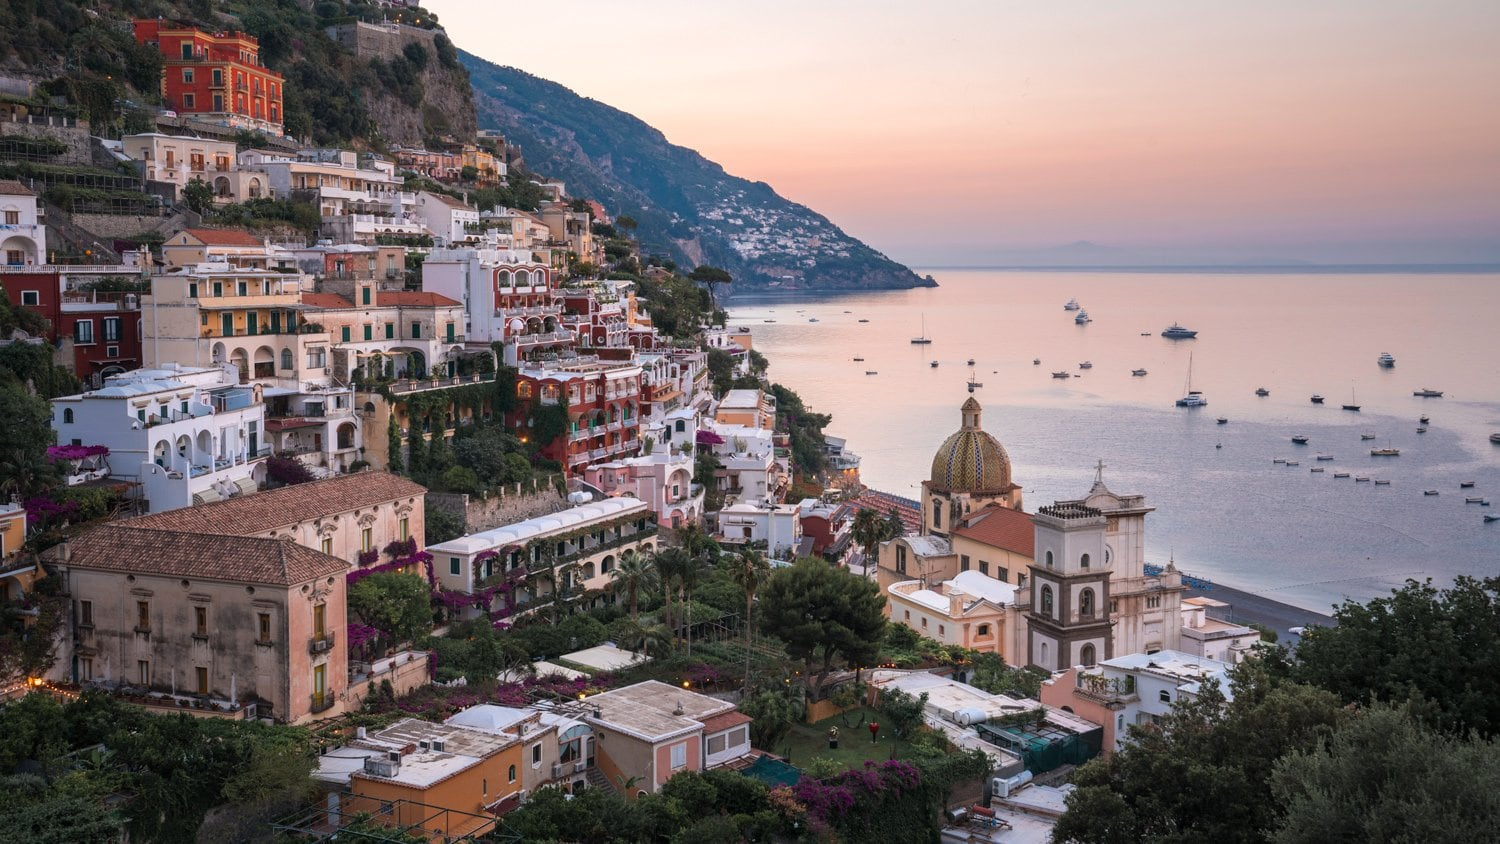 HDR Photography - Dawn in Positano Italy